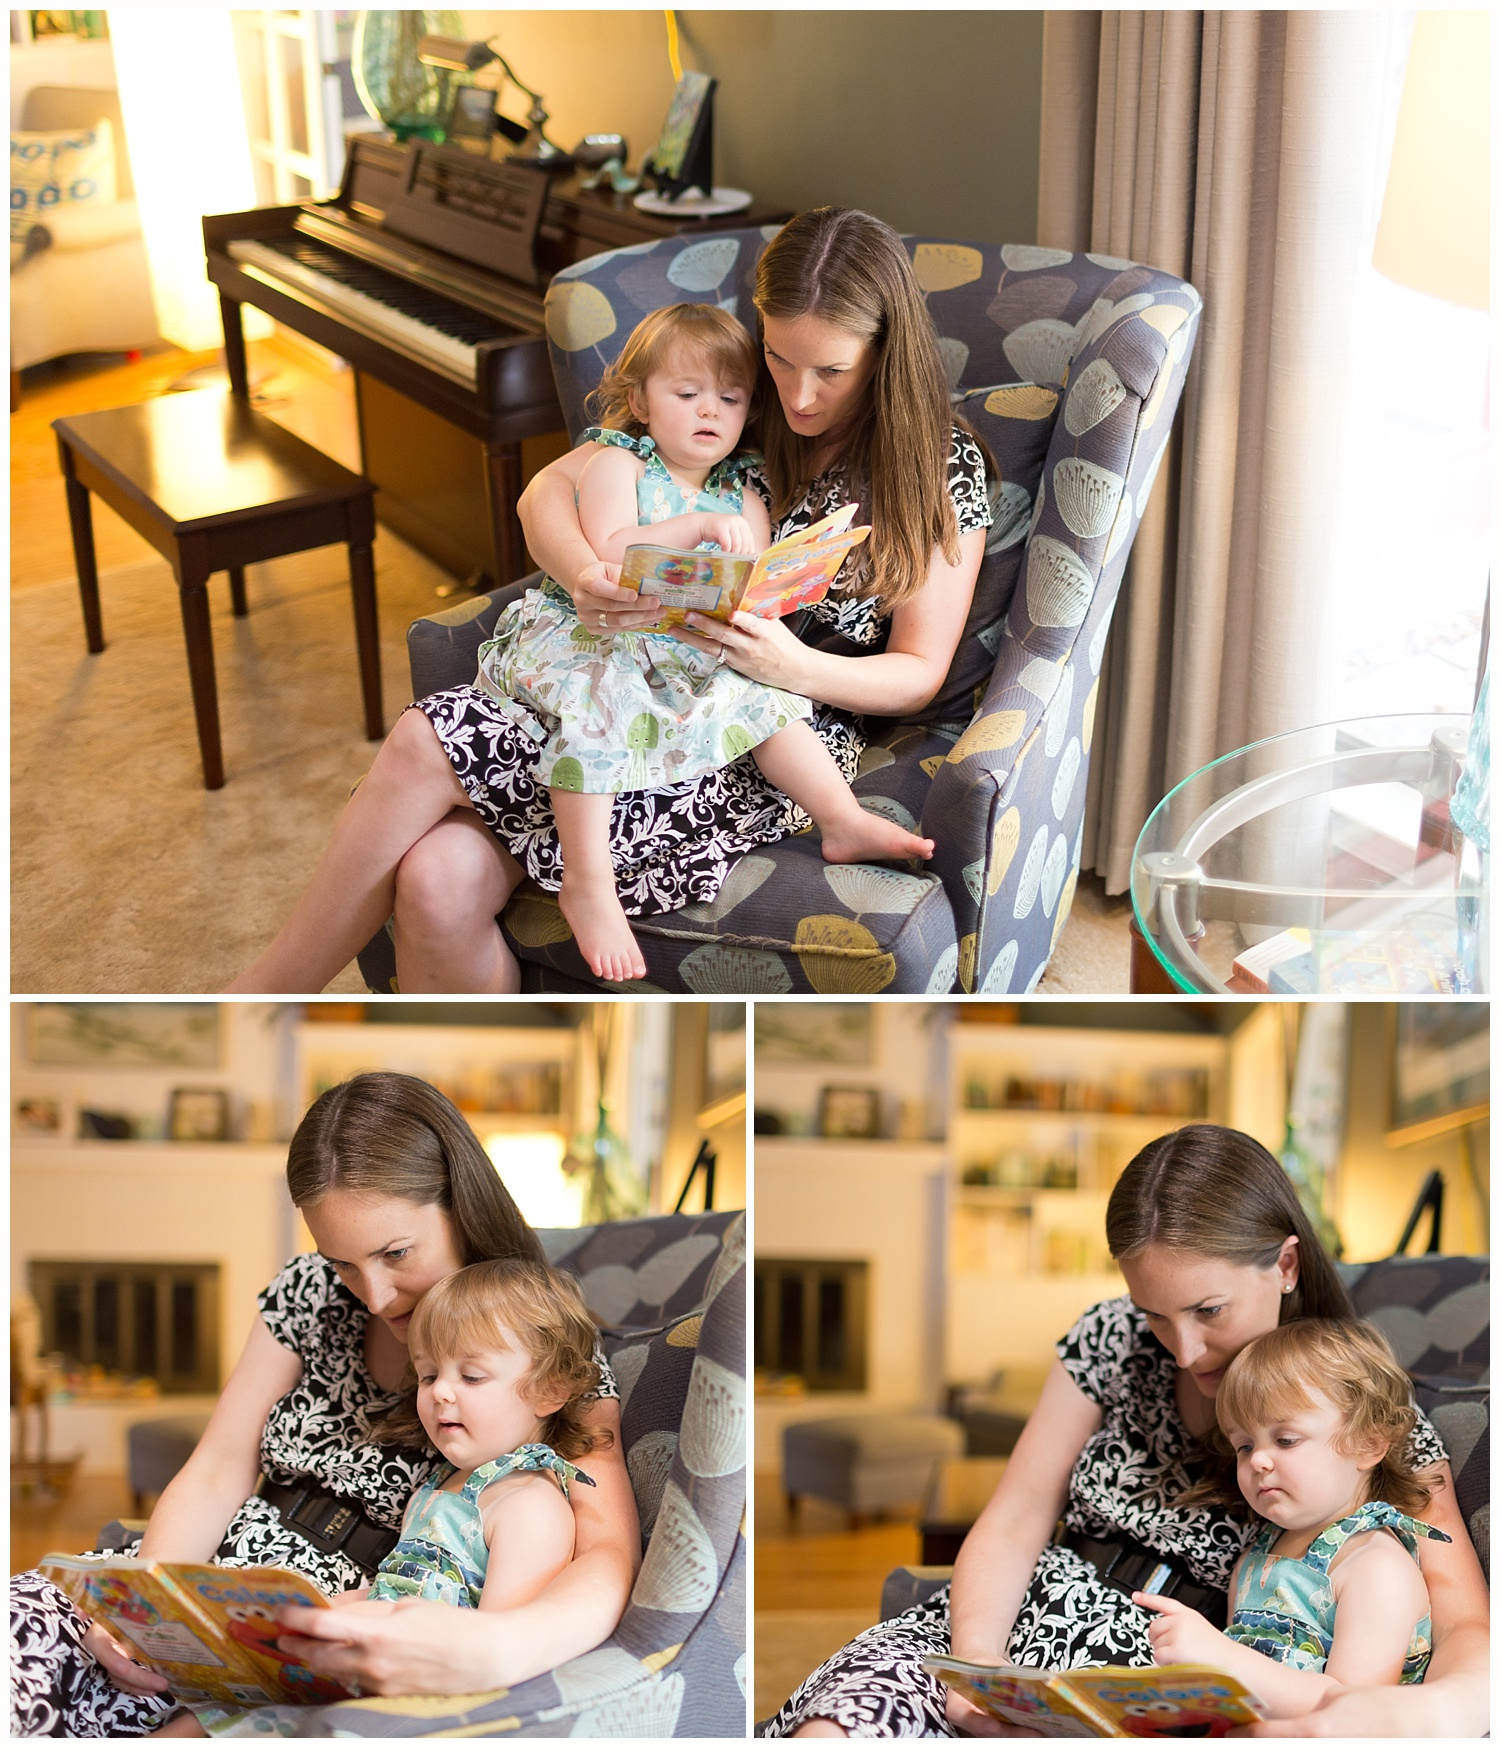 mom reading book to toddler daughter